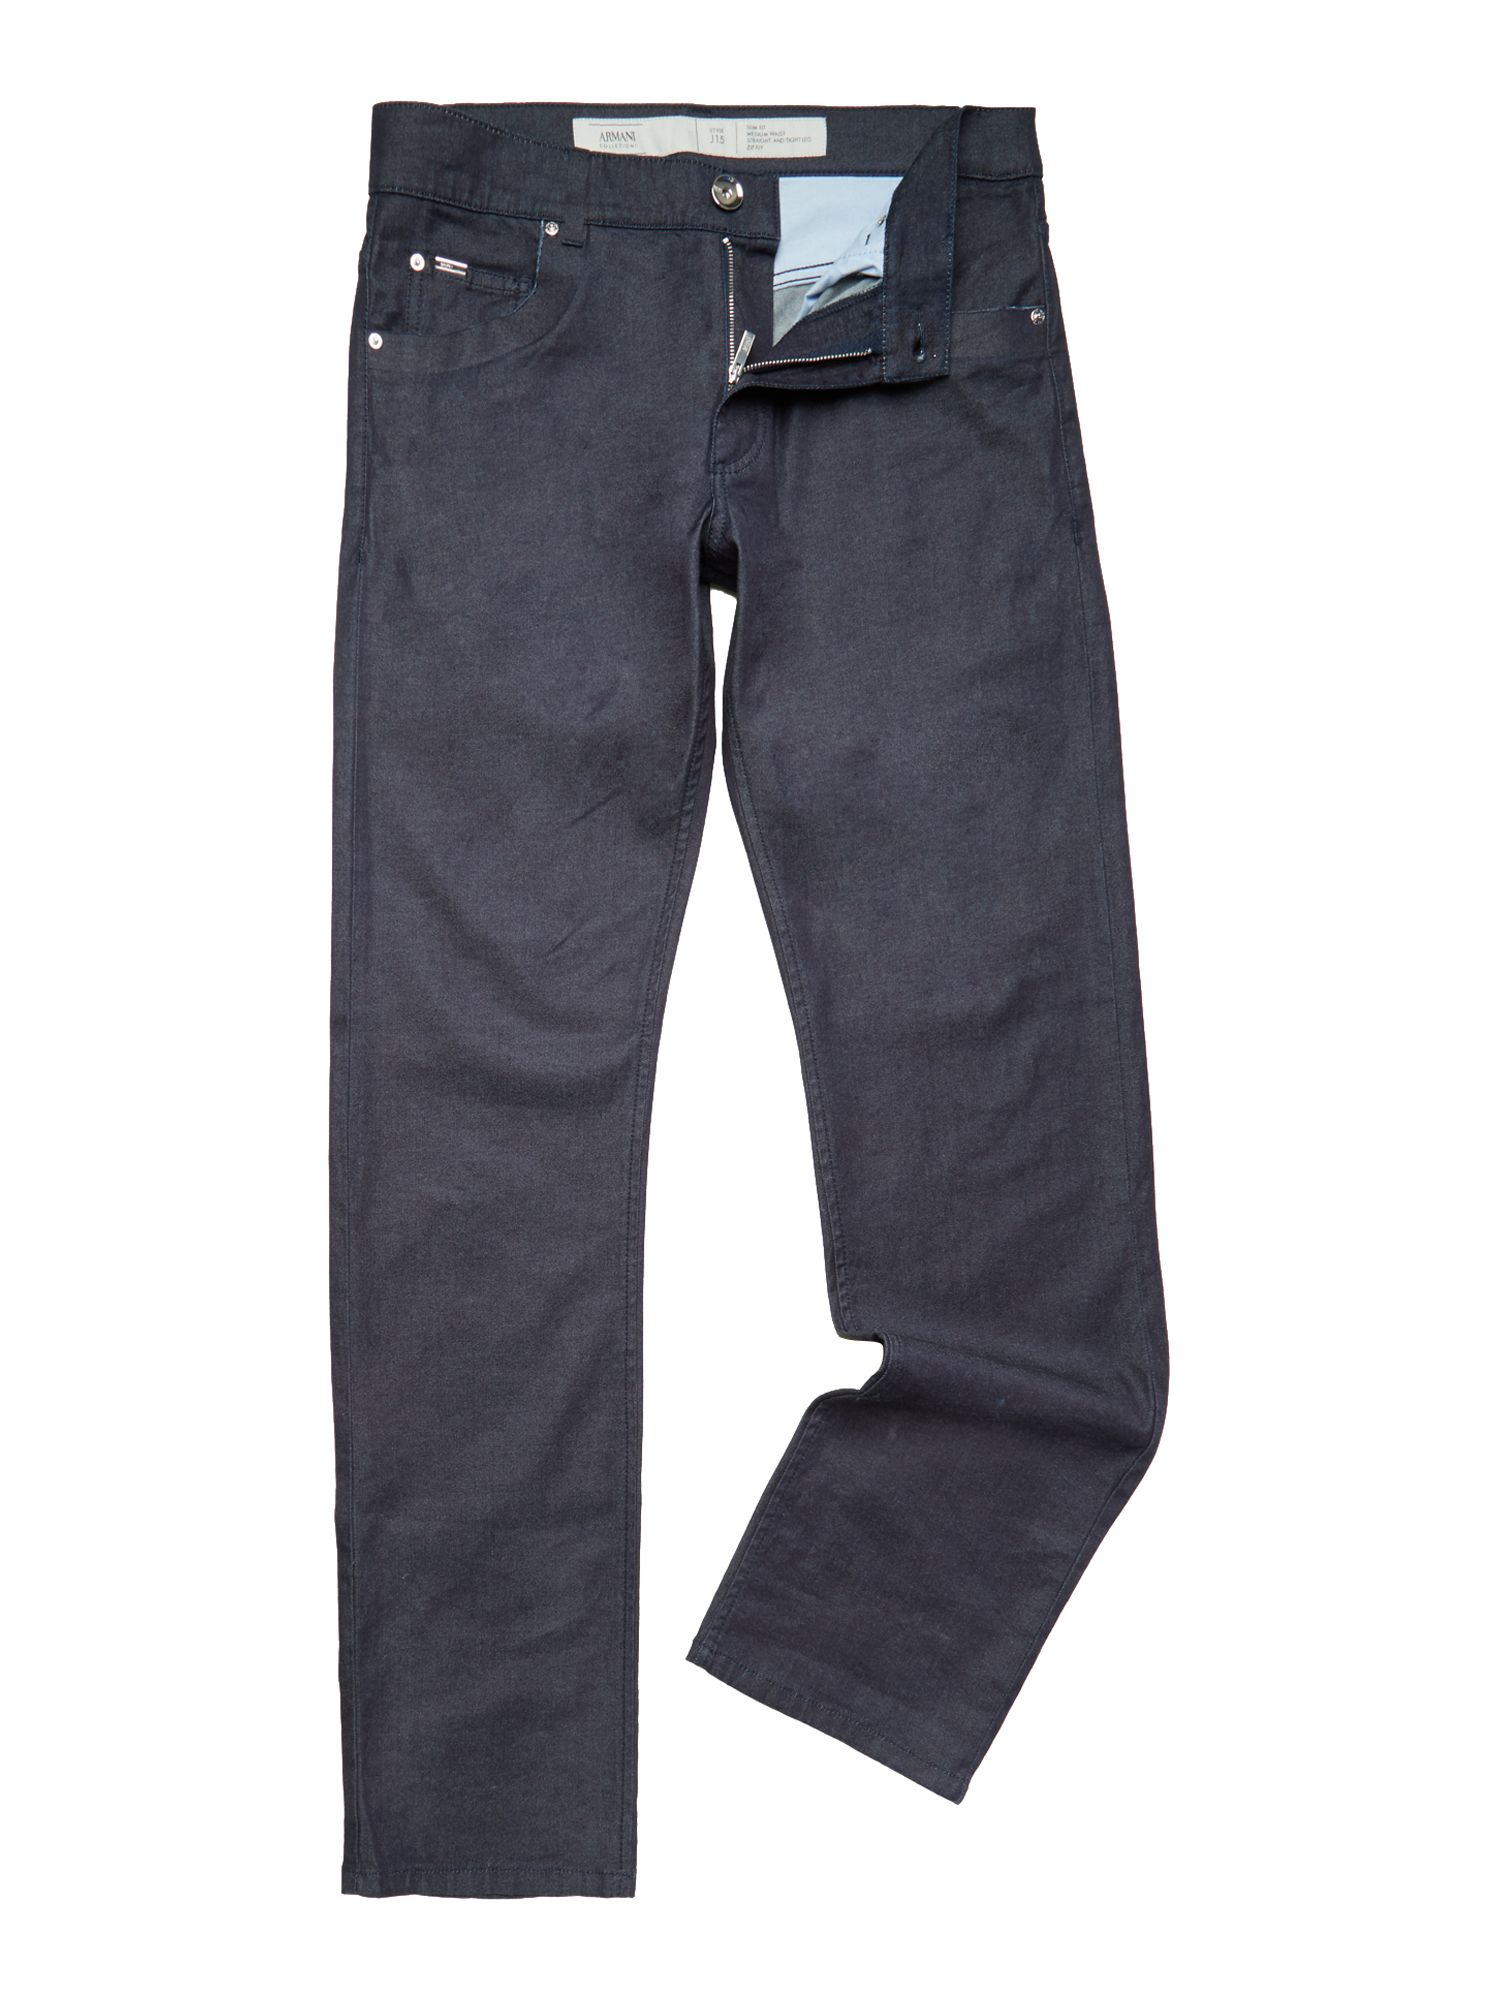 Raw edged coated regular fit jeans